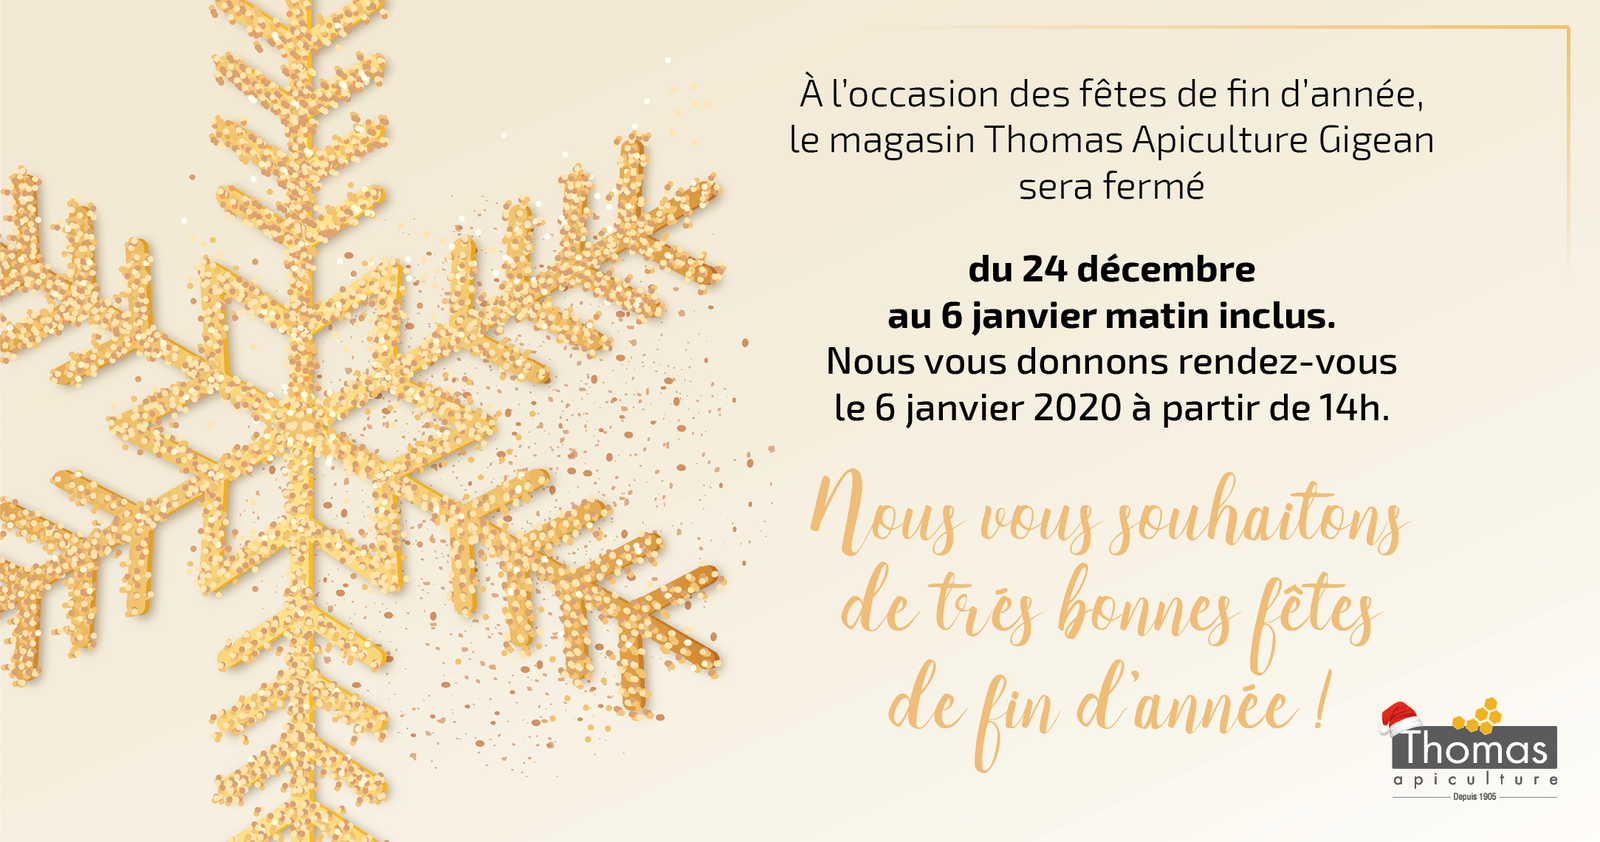 Communication THOMAS Apiculture Gigean